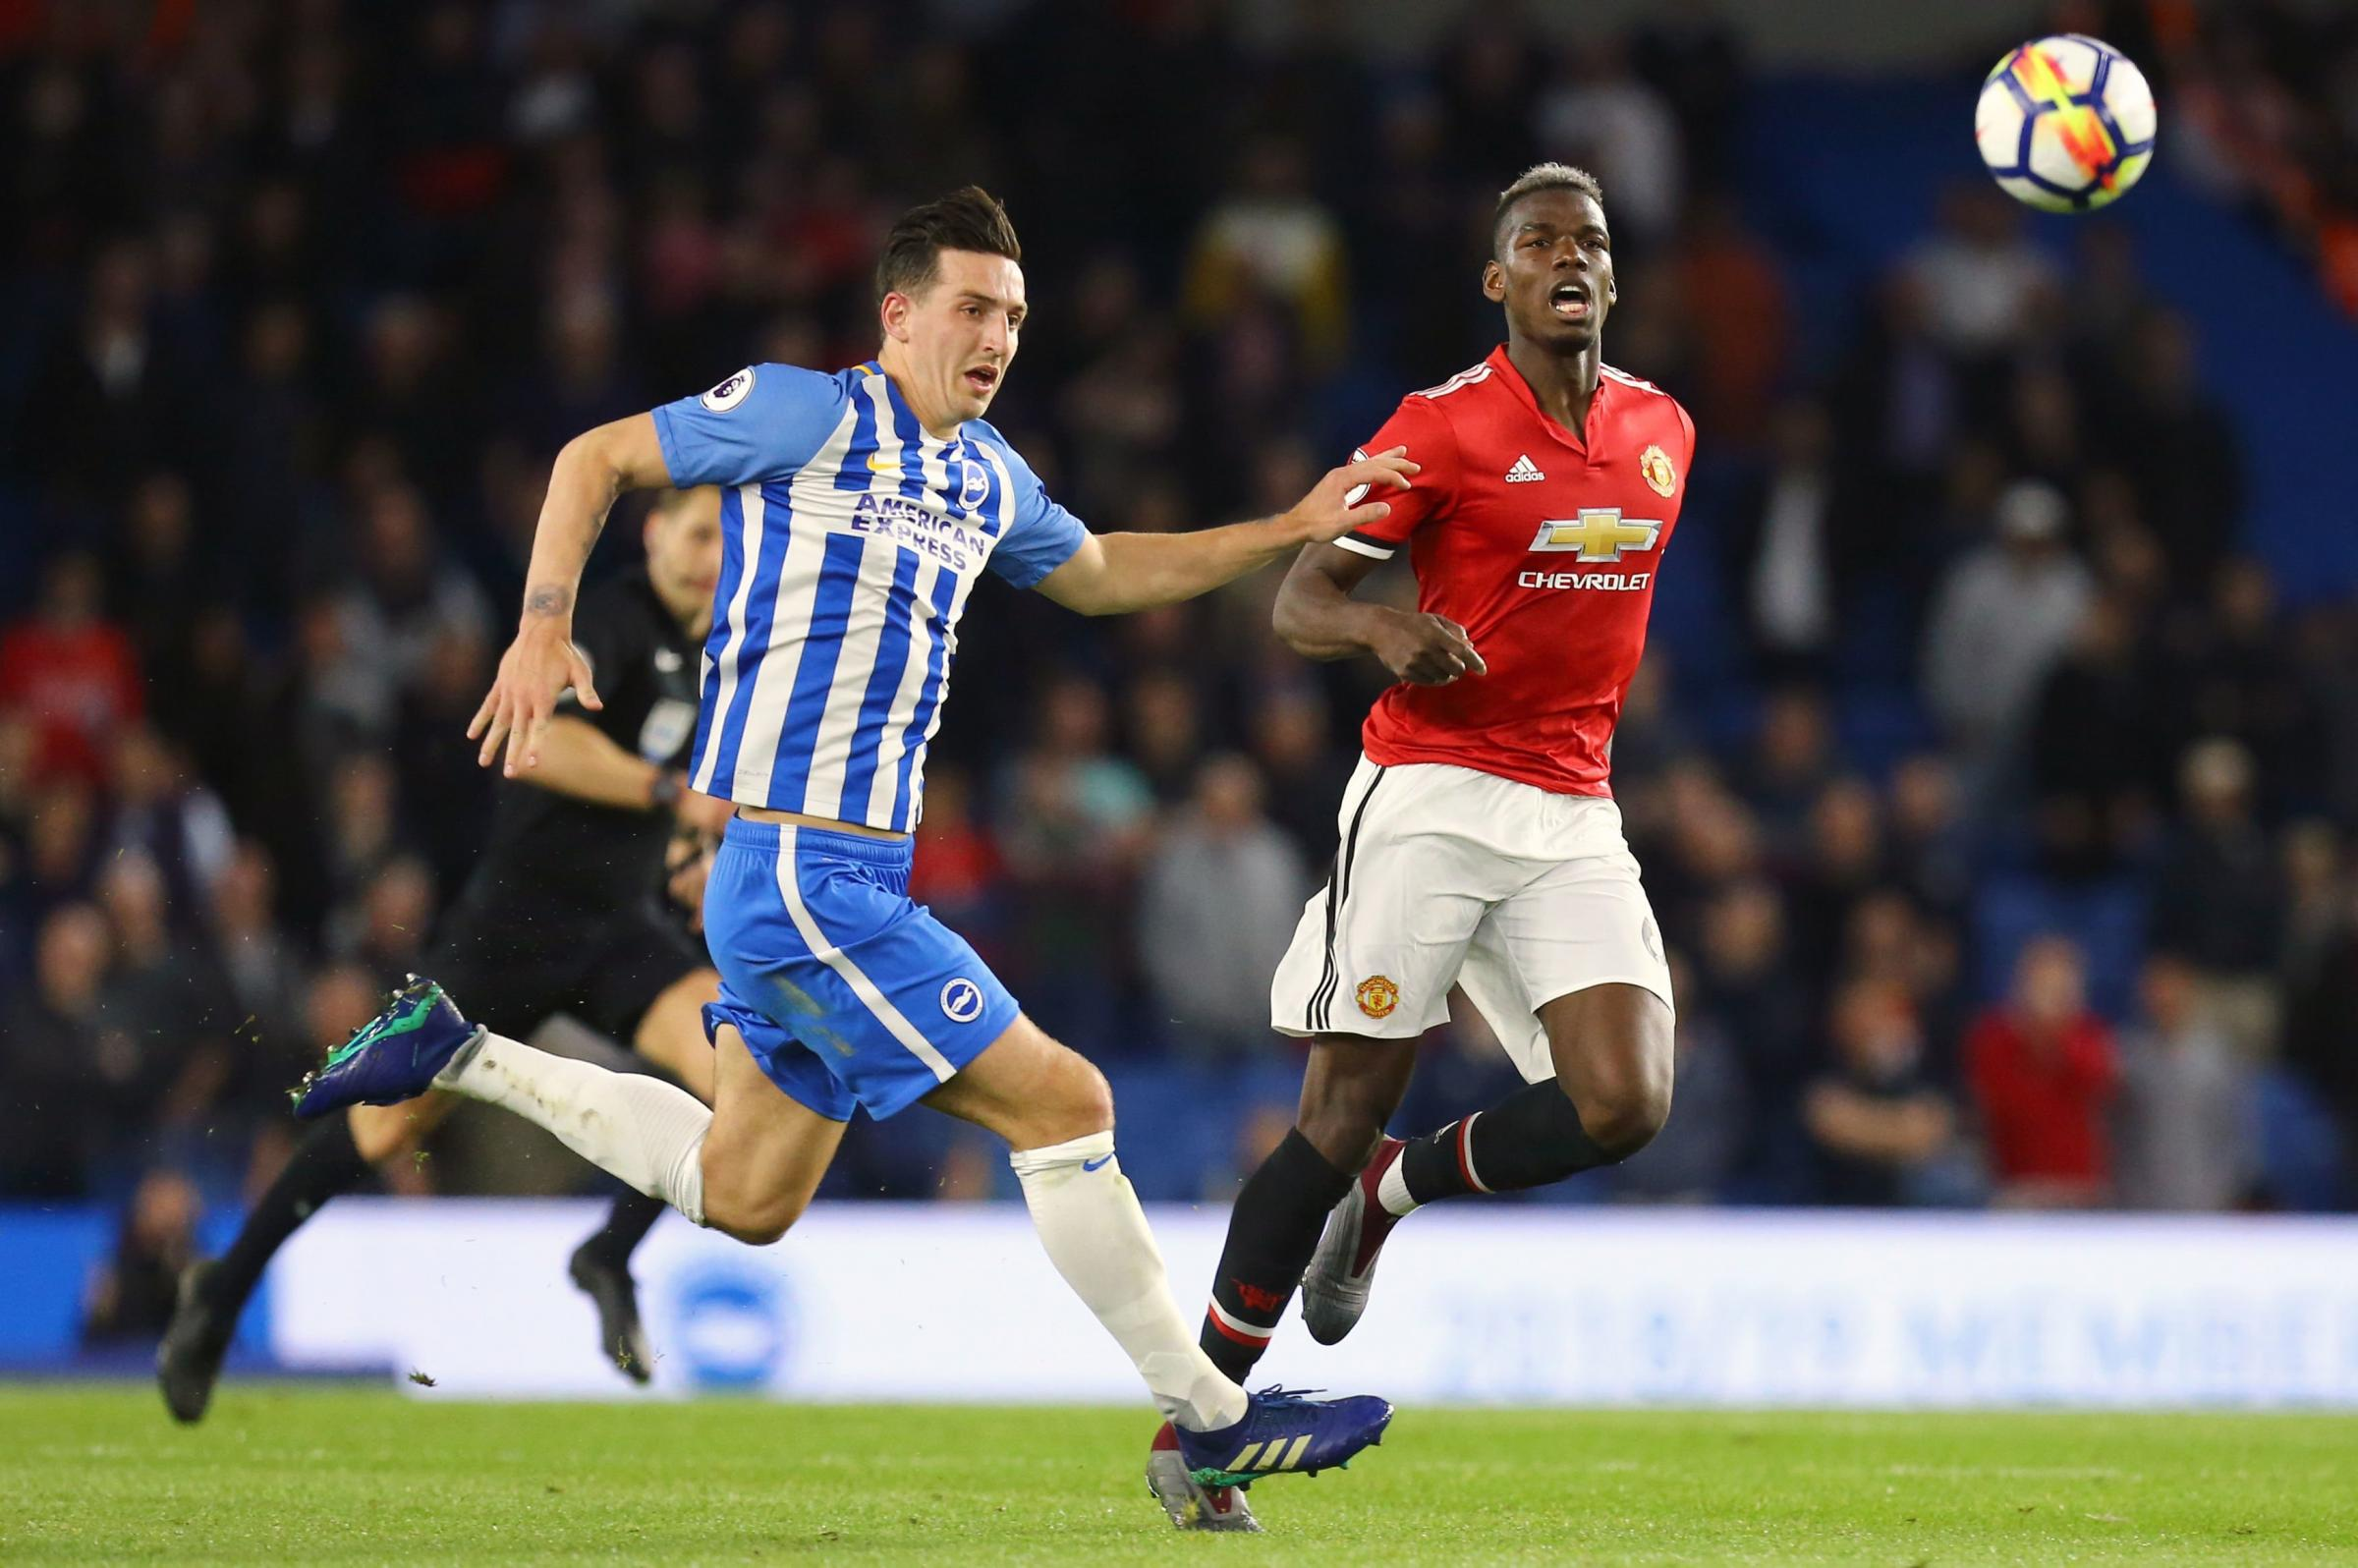 Brighton & Hove Albion's Lewis Dunk (left) and Manchester United's Paul Pogba battle for the ball during the Premier League match at the AMEX Stadium, Brighton. PRESS ASSOCIATION Photo. Picture date: Friday May 4, 2018. See PA story SOCCER Brighto